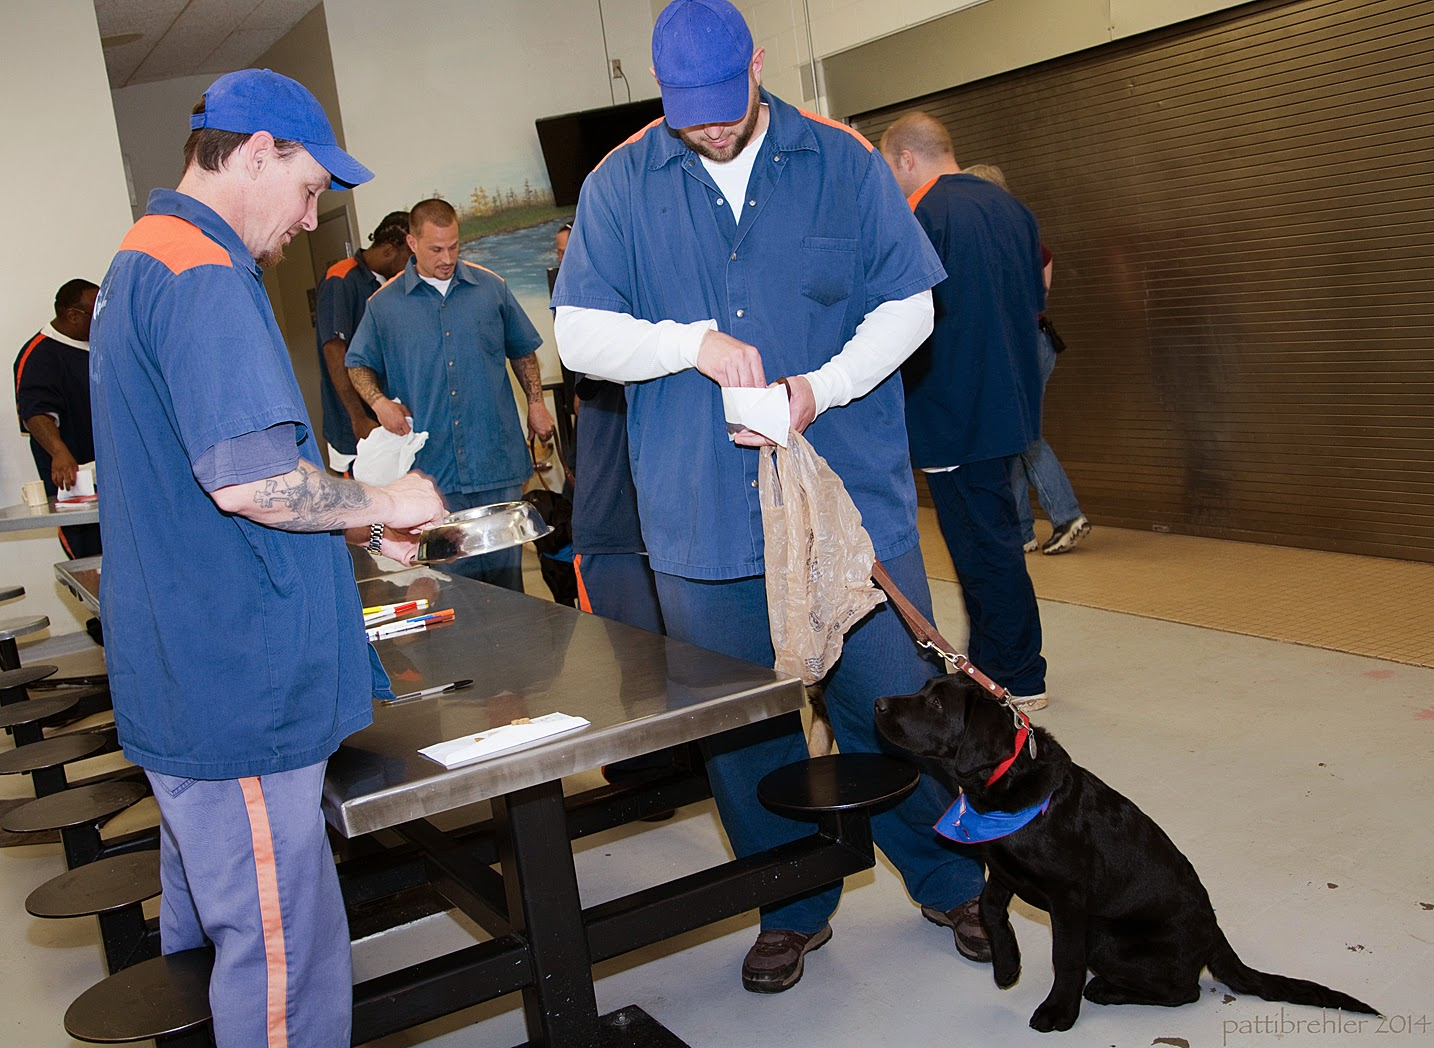 Two men dressed in the prison blue uniform with blue baseball caps are standing on either side of the end of a steel lunch table. The man on the left is looking down at a stainless steel dog dish whcih he is holding in his hands. The man onthe right is holding a white envelope, reaching into it with his right hand and holding a plastic shopping bag and leash in his left hand. A black lab puppy is sitting on the tile floor next to the man and looking up at the bag. There are other men and puppies in the background.